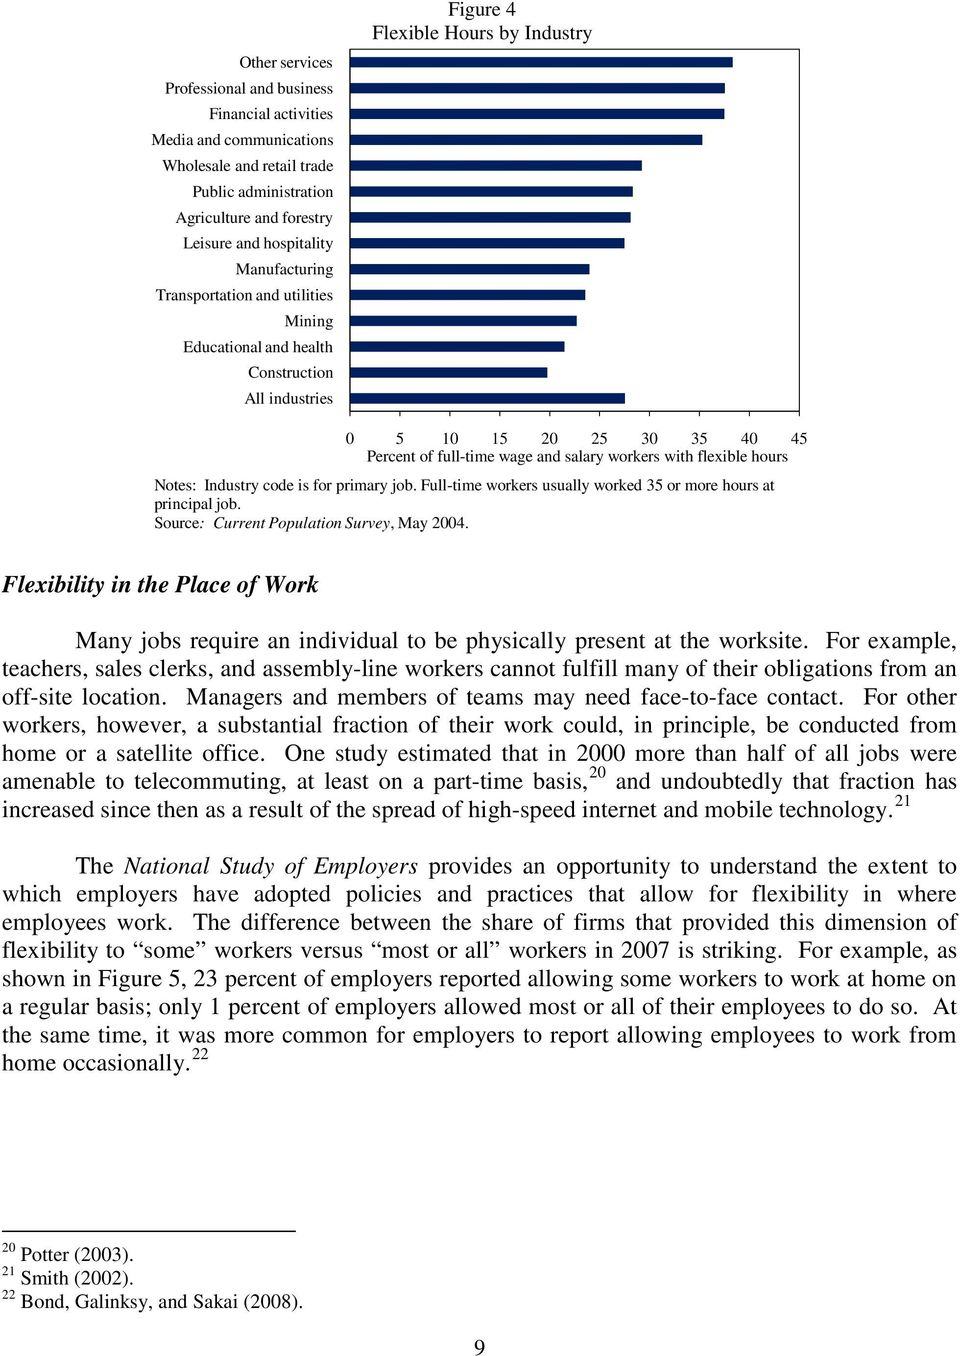 with flexible hours Notes: Industry code is for primary job. Full-time workers usually worked 35 or more hours at principal job. Source: Current Population Survey, May 2004.